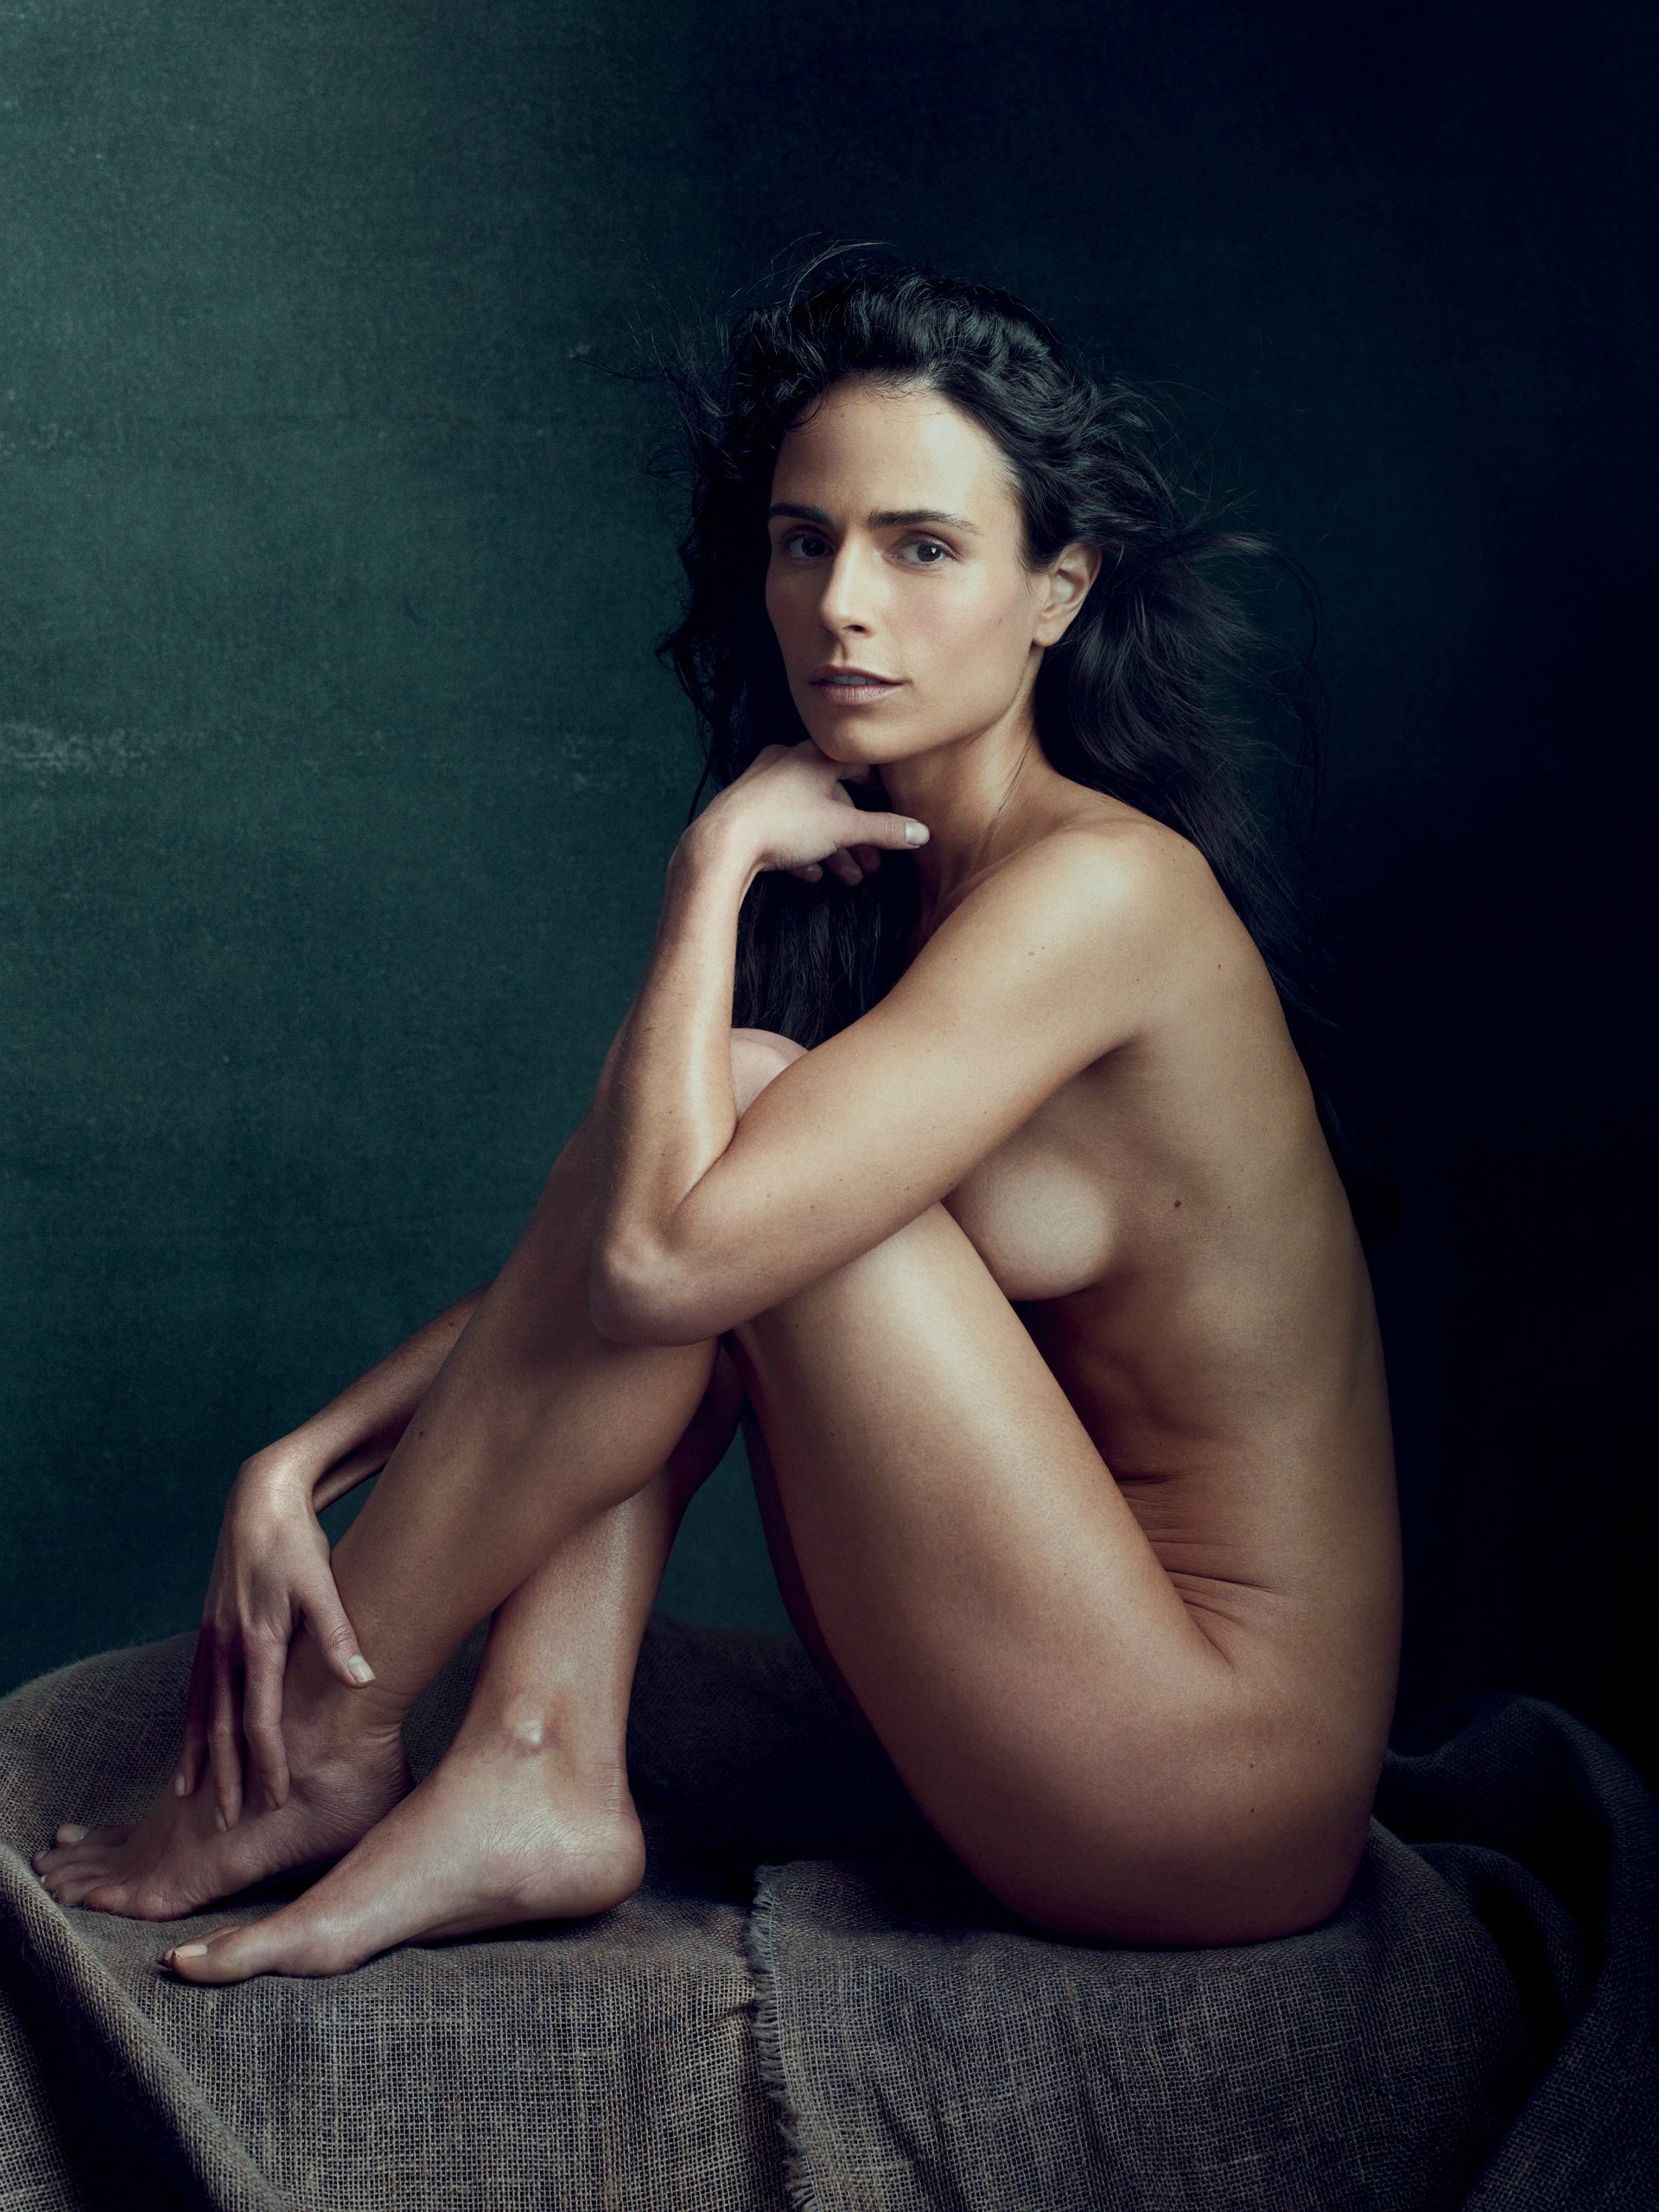 Sandrine Holt poses nude for Allure feature